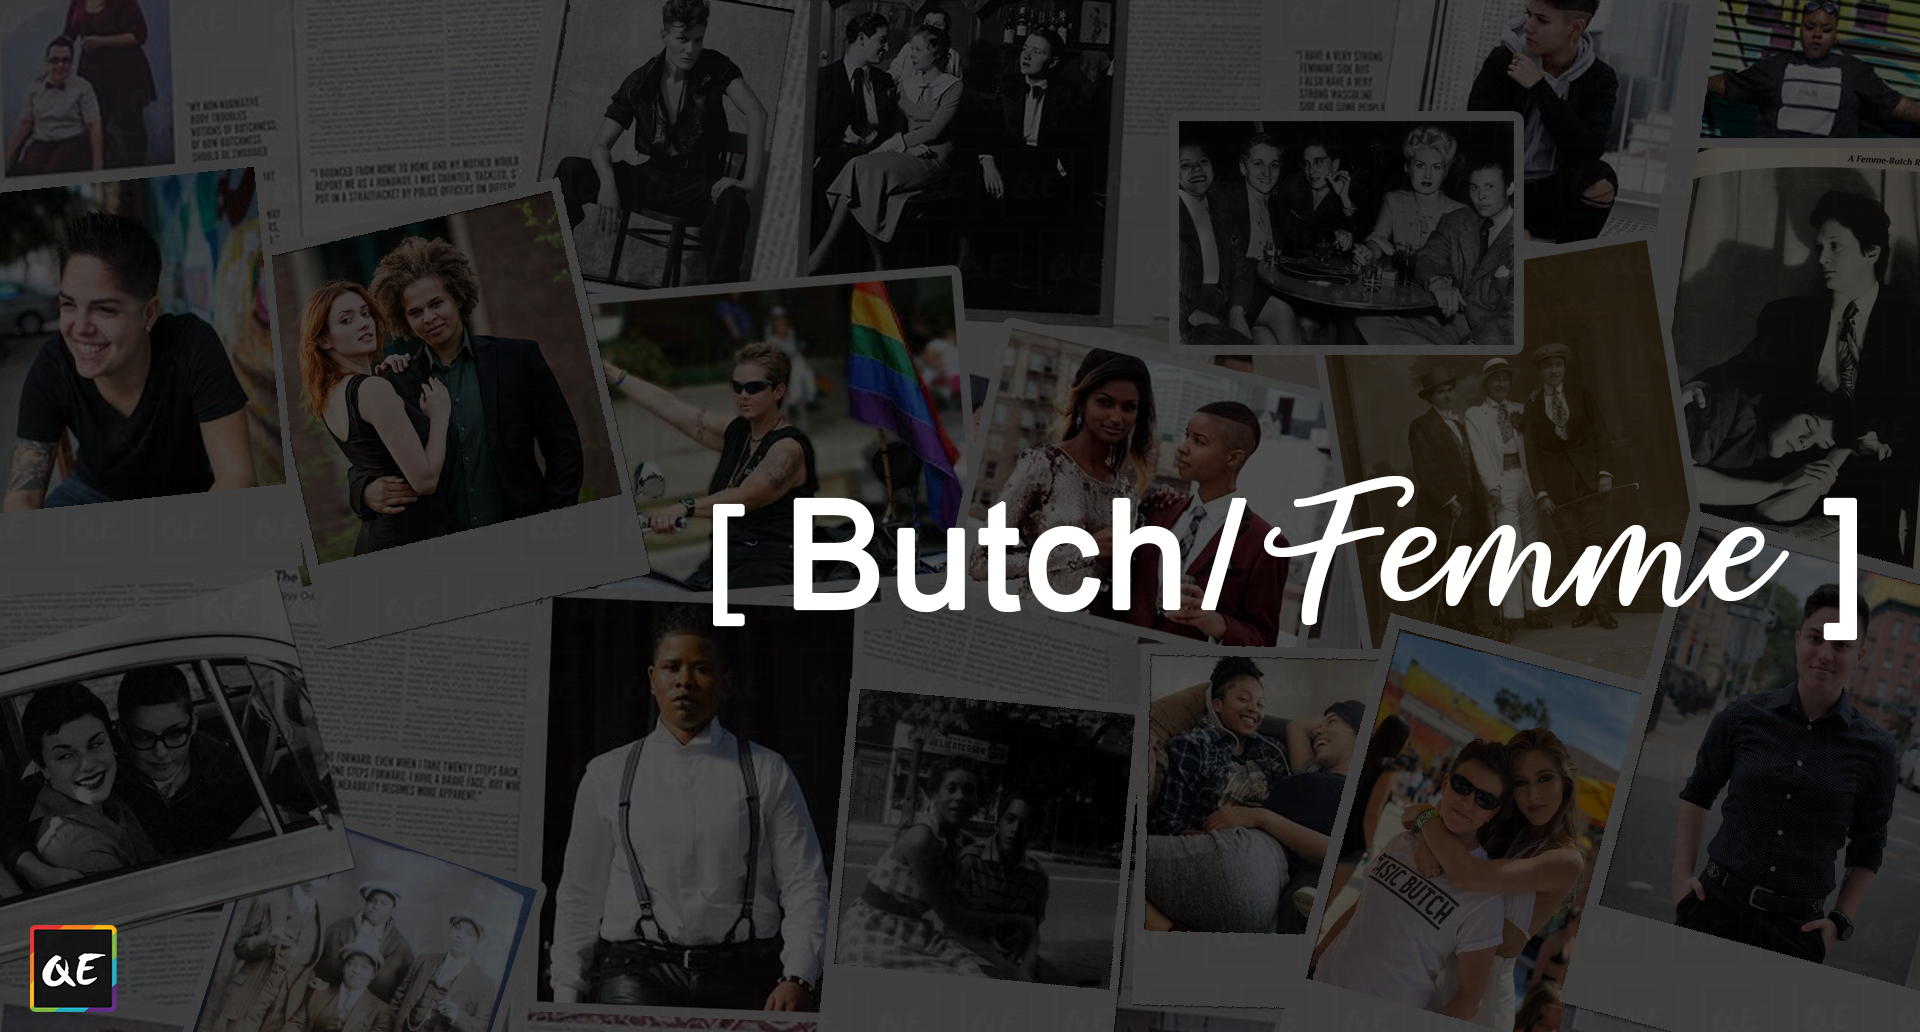 QueerEvents.ca - Queer Culture - lesbian subculture butch femme